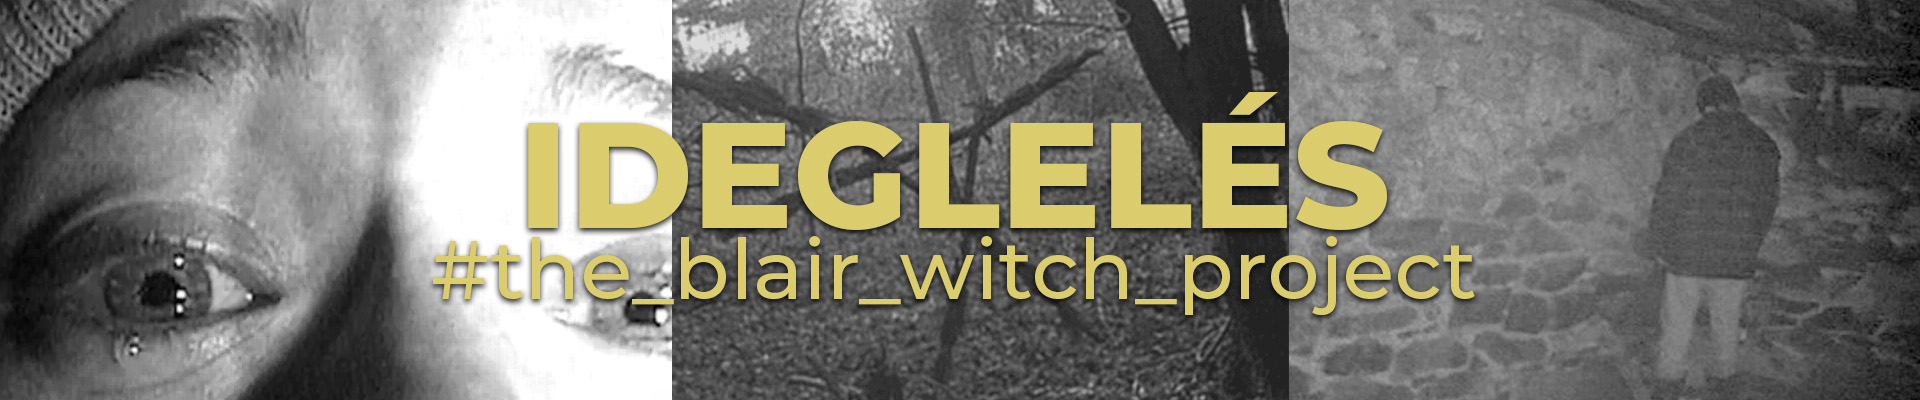 The Blair Witch Project - Ideglelés